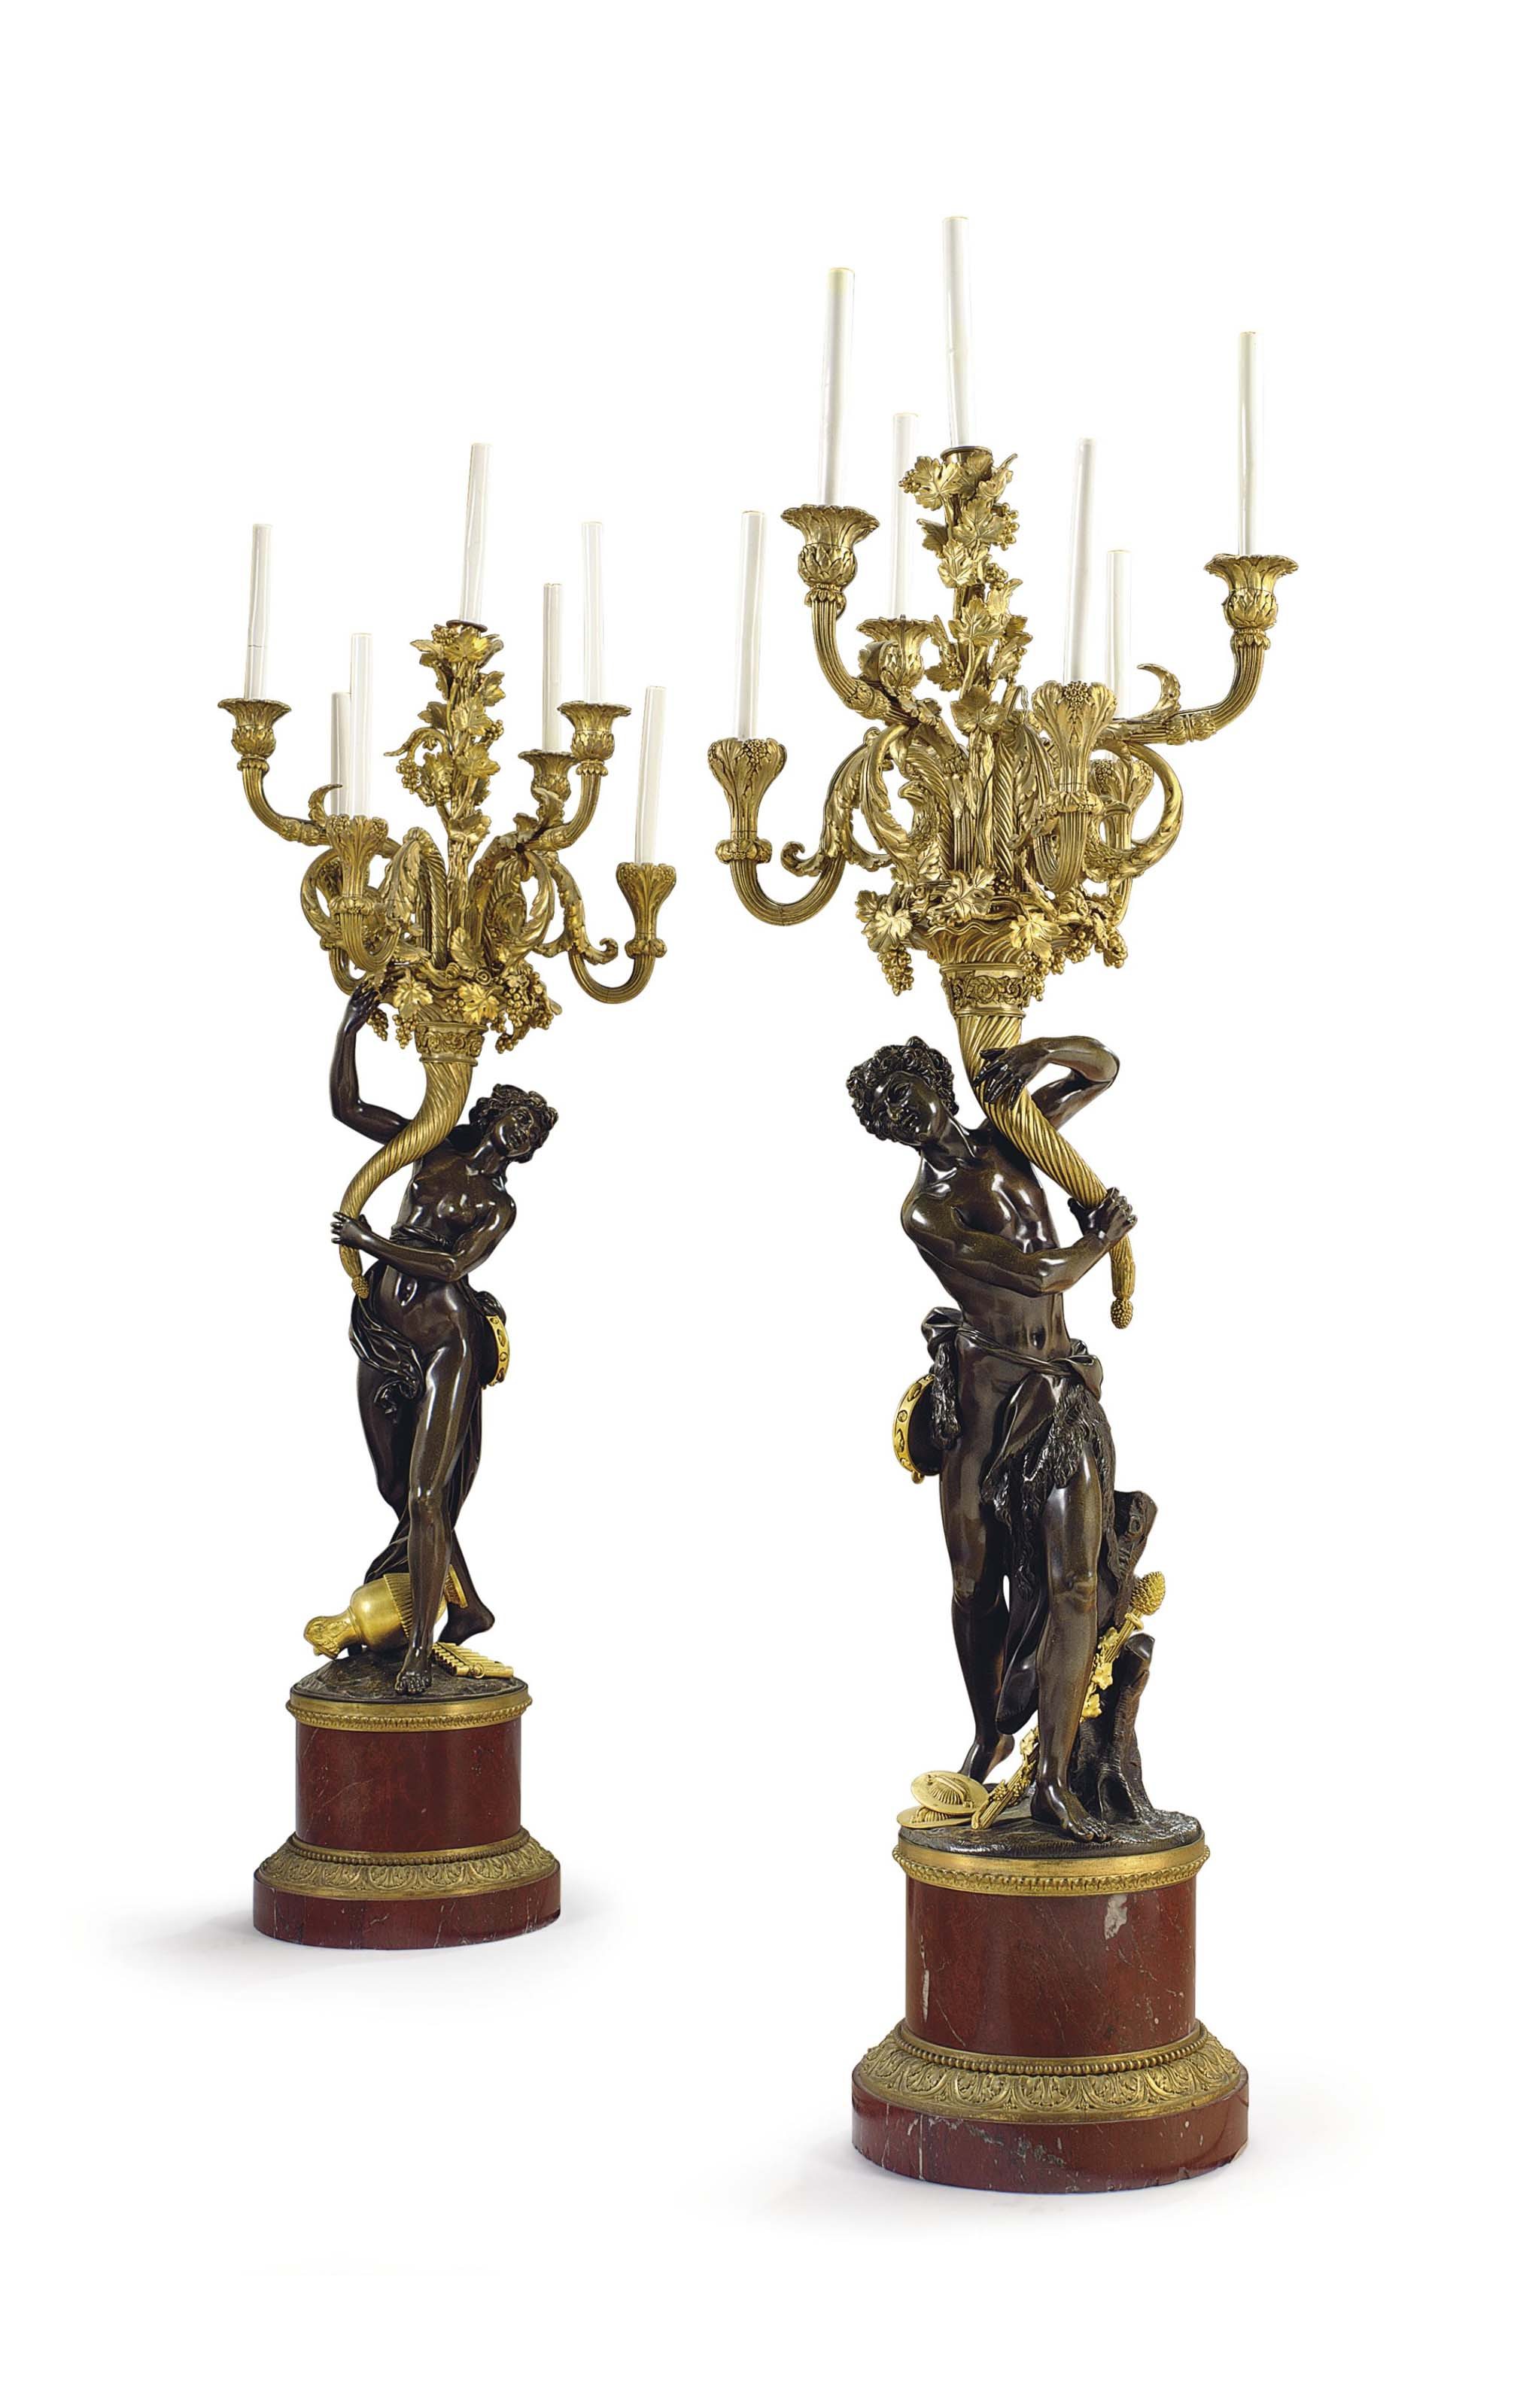 A PAIR OF LARGE FRENCH ORMOLU, PATINATED BRONZE AND ROUGE MARBLE SEVEN-LIGHT CANDELABRA